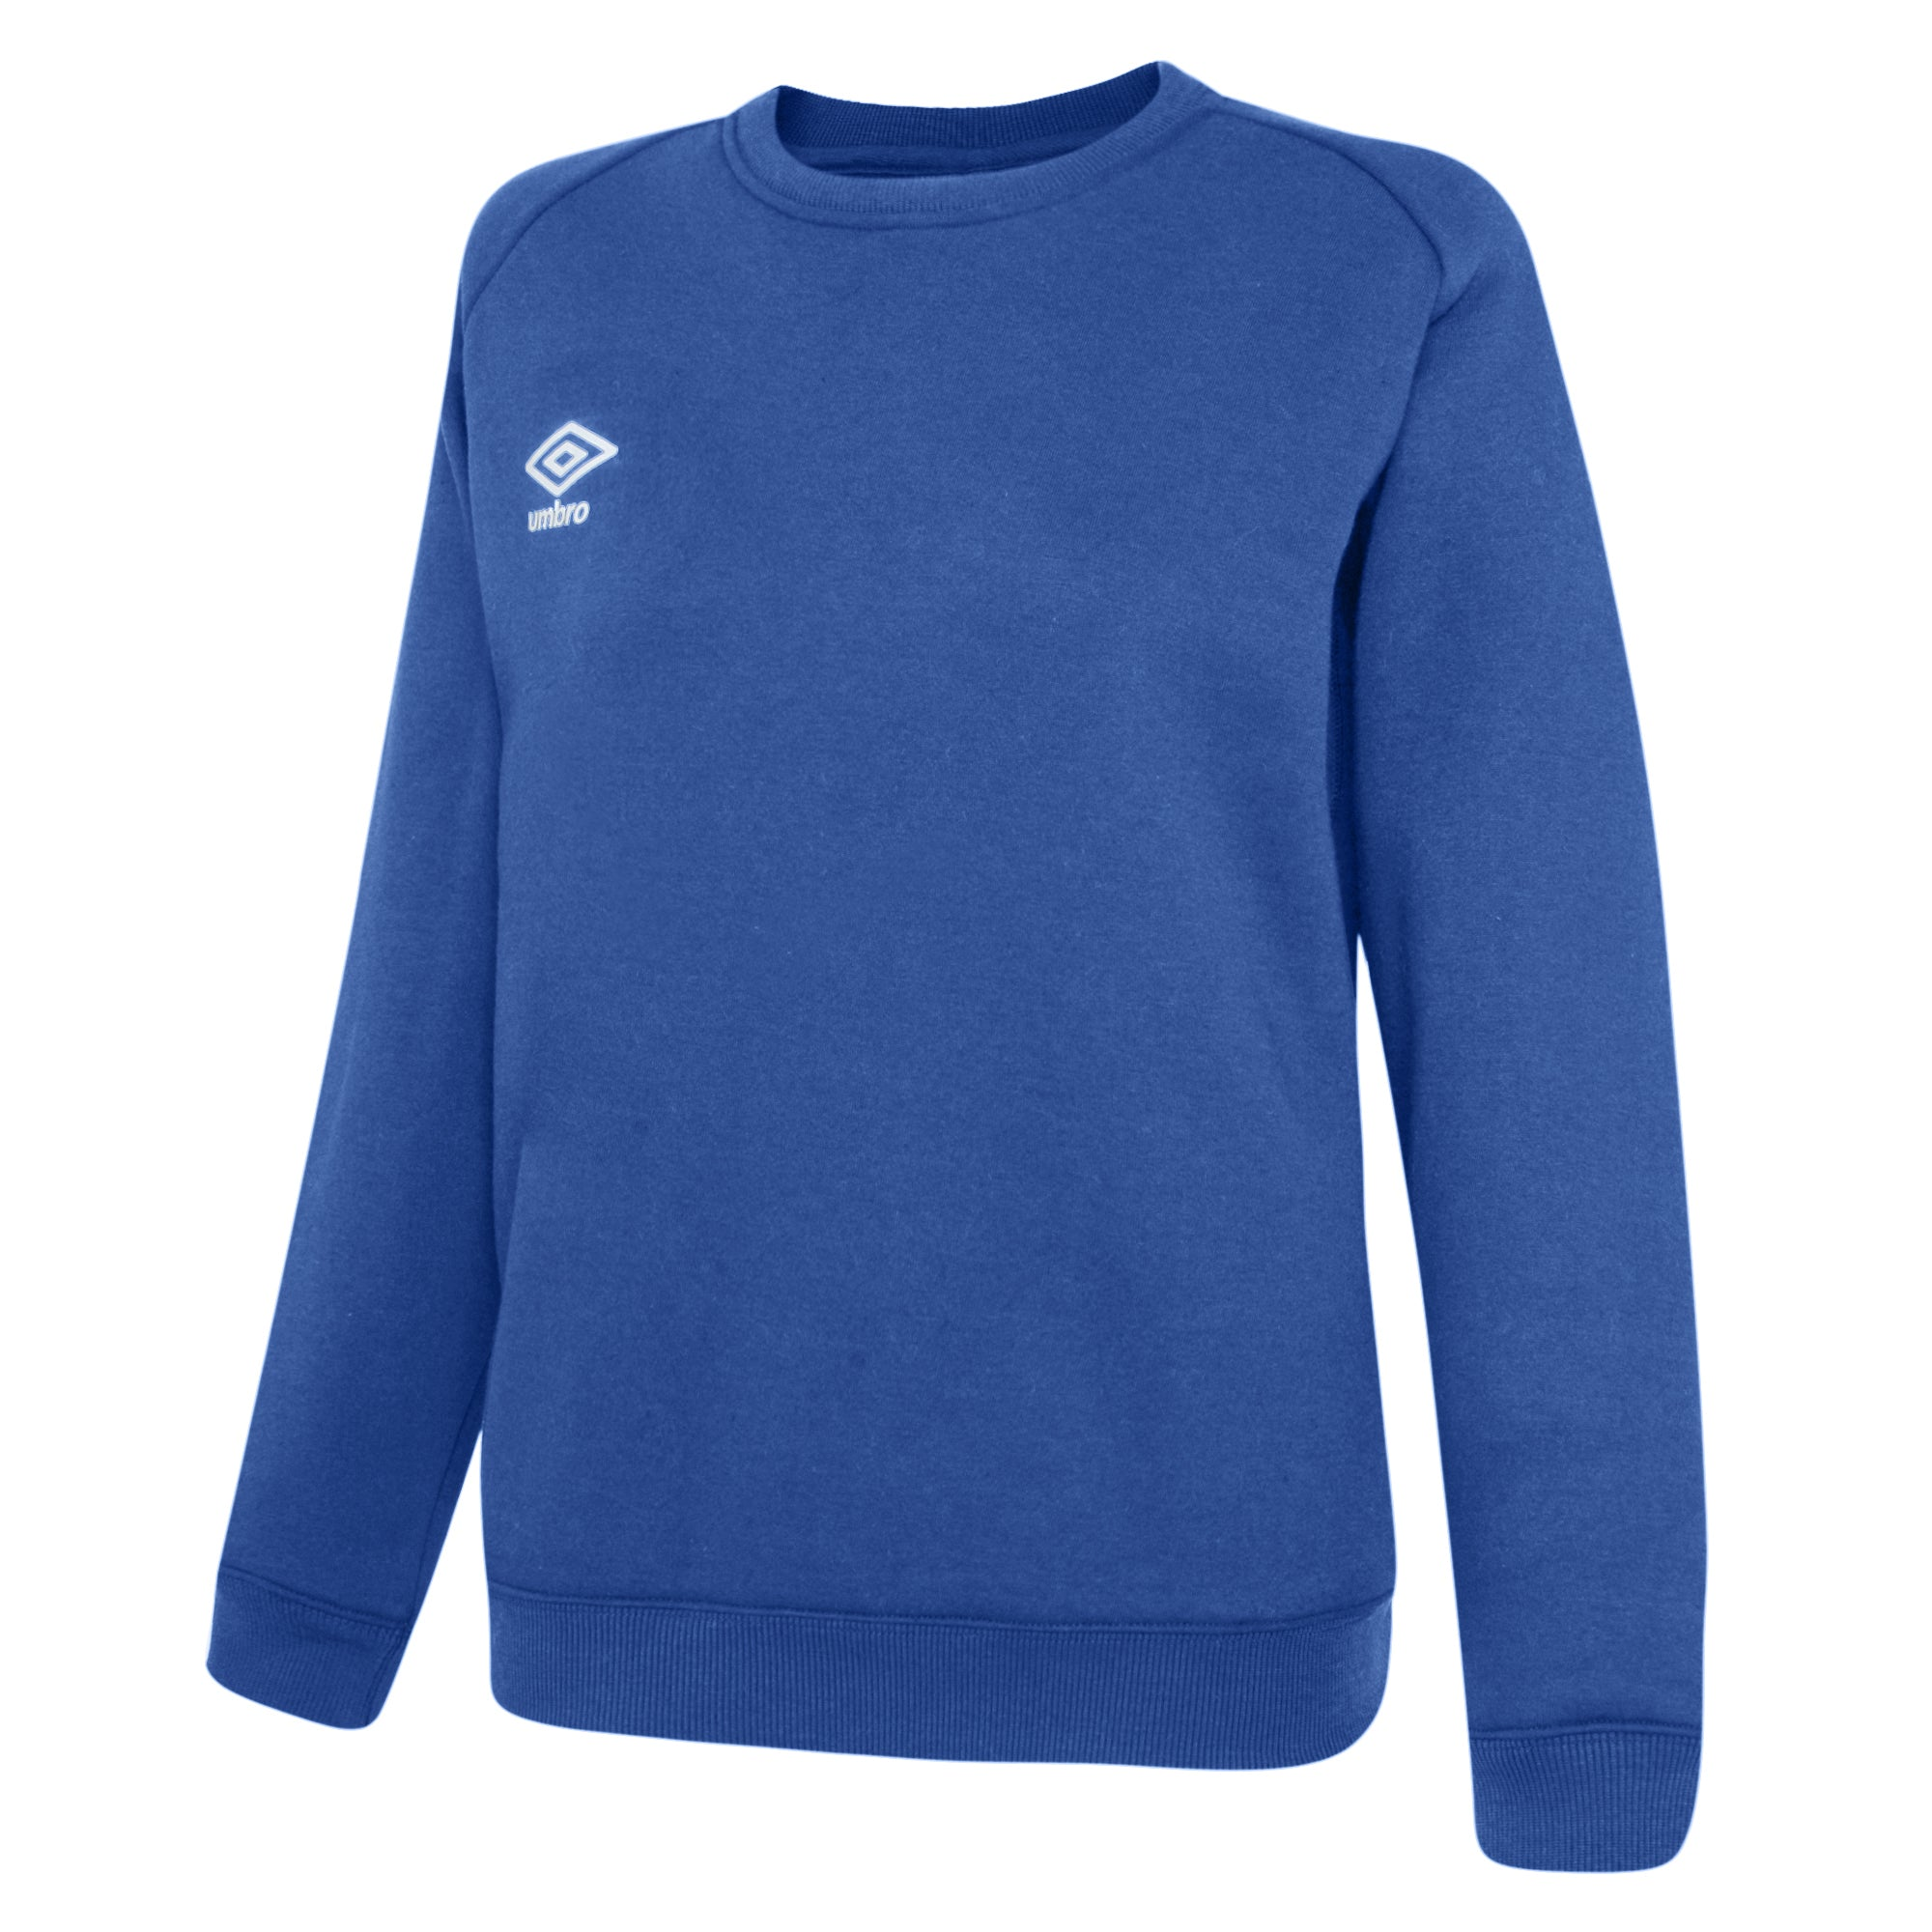 Umbro Club Leisure Women's Sweat - TW Royal/White